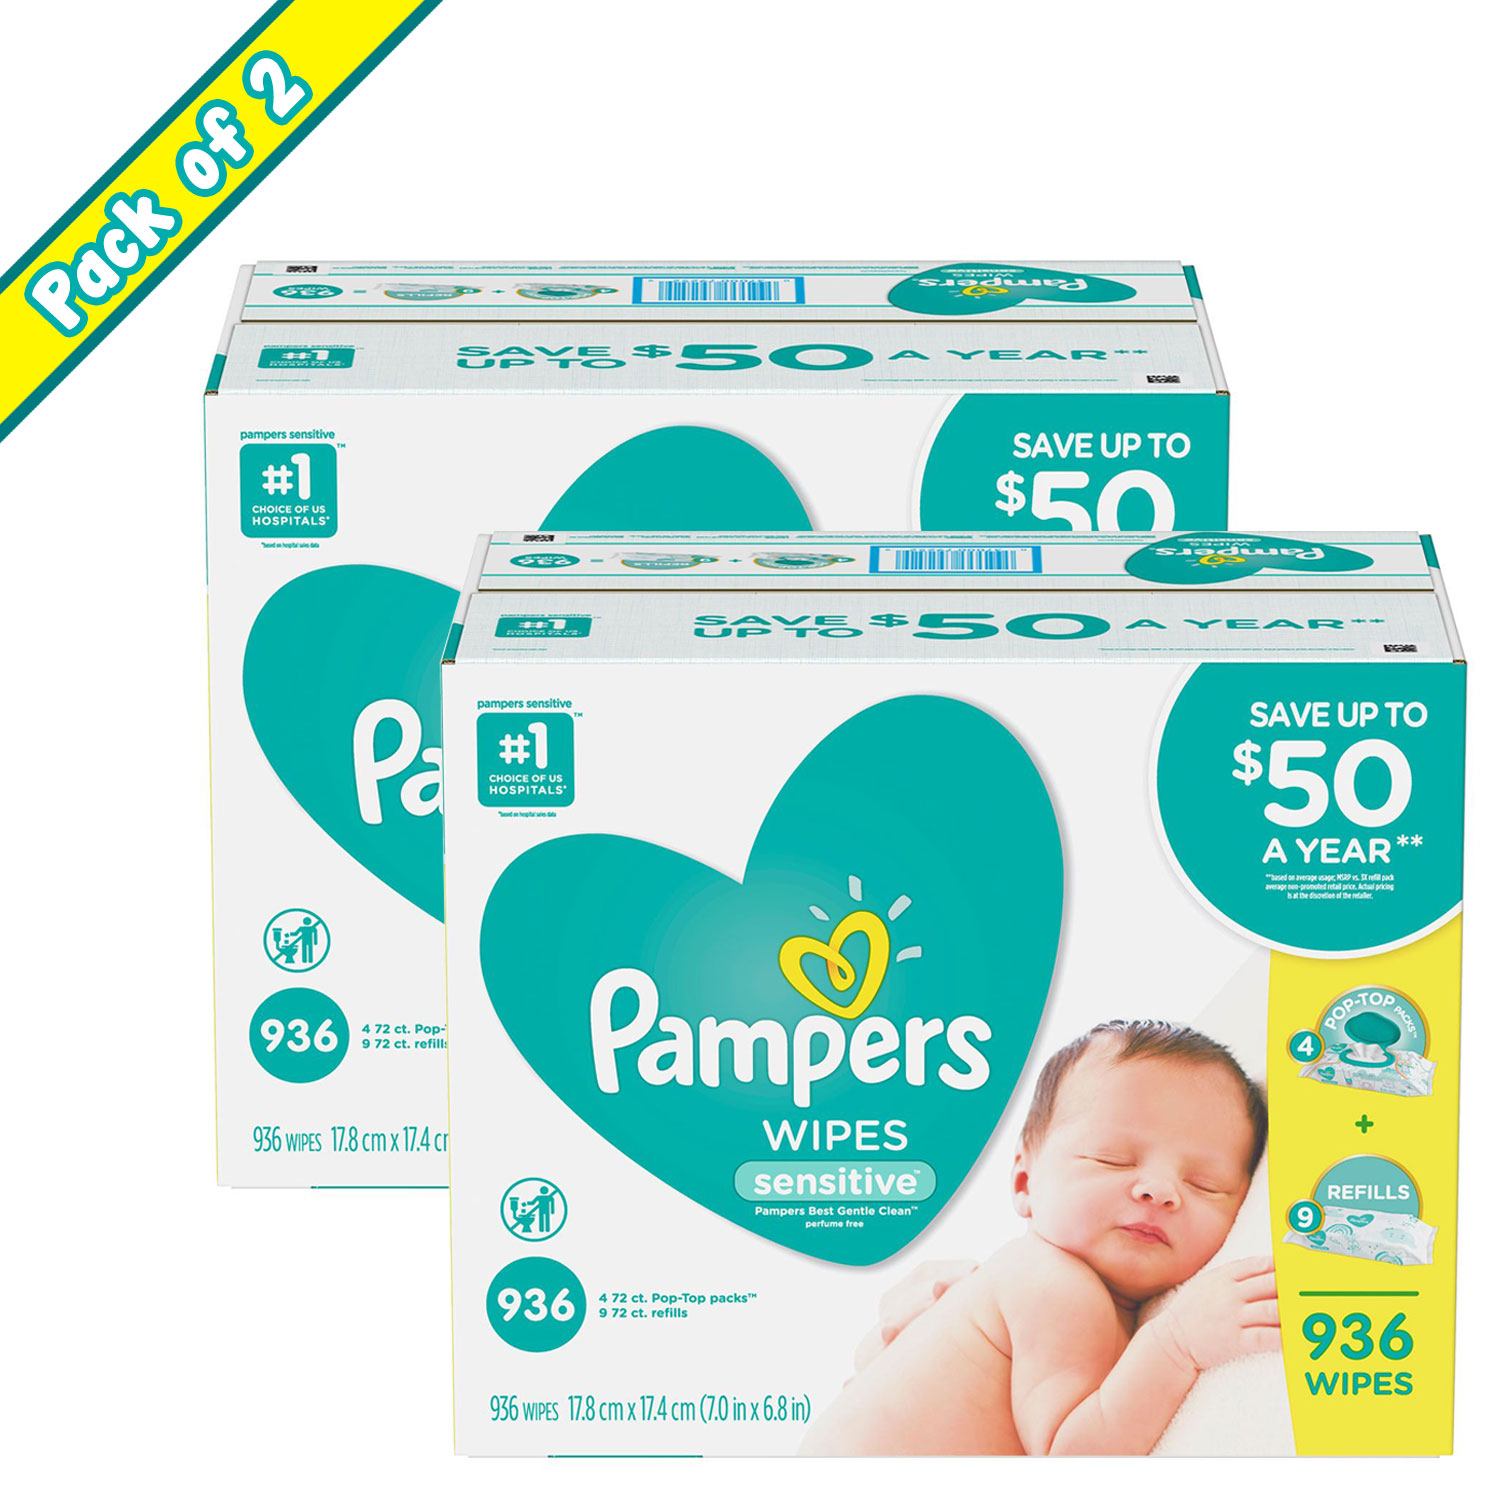 Pack of 2 Pampers Sensitive Baby Wipes - 936 ct. (Includes Four 72-ct. Pop-Top Packs w/ Nine 72-ct. Resealable Refills)